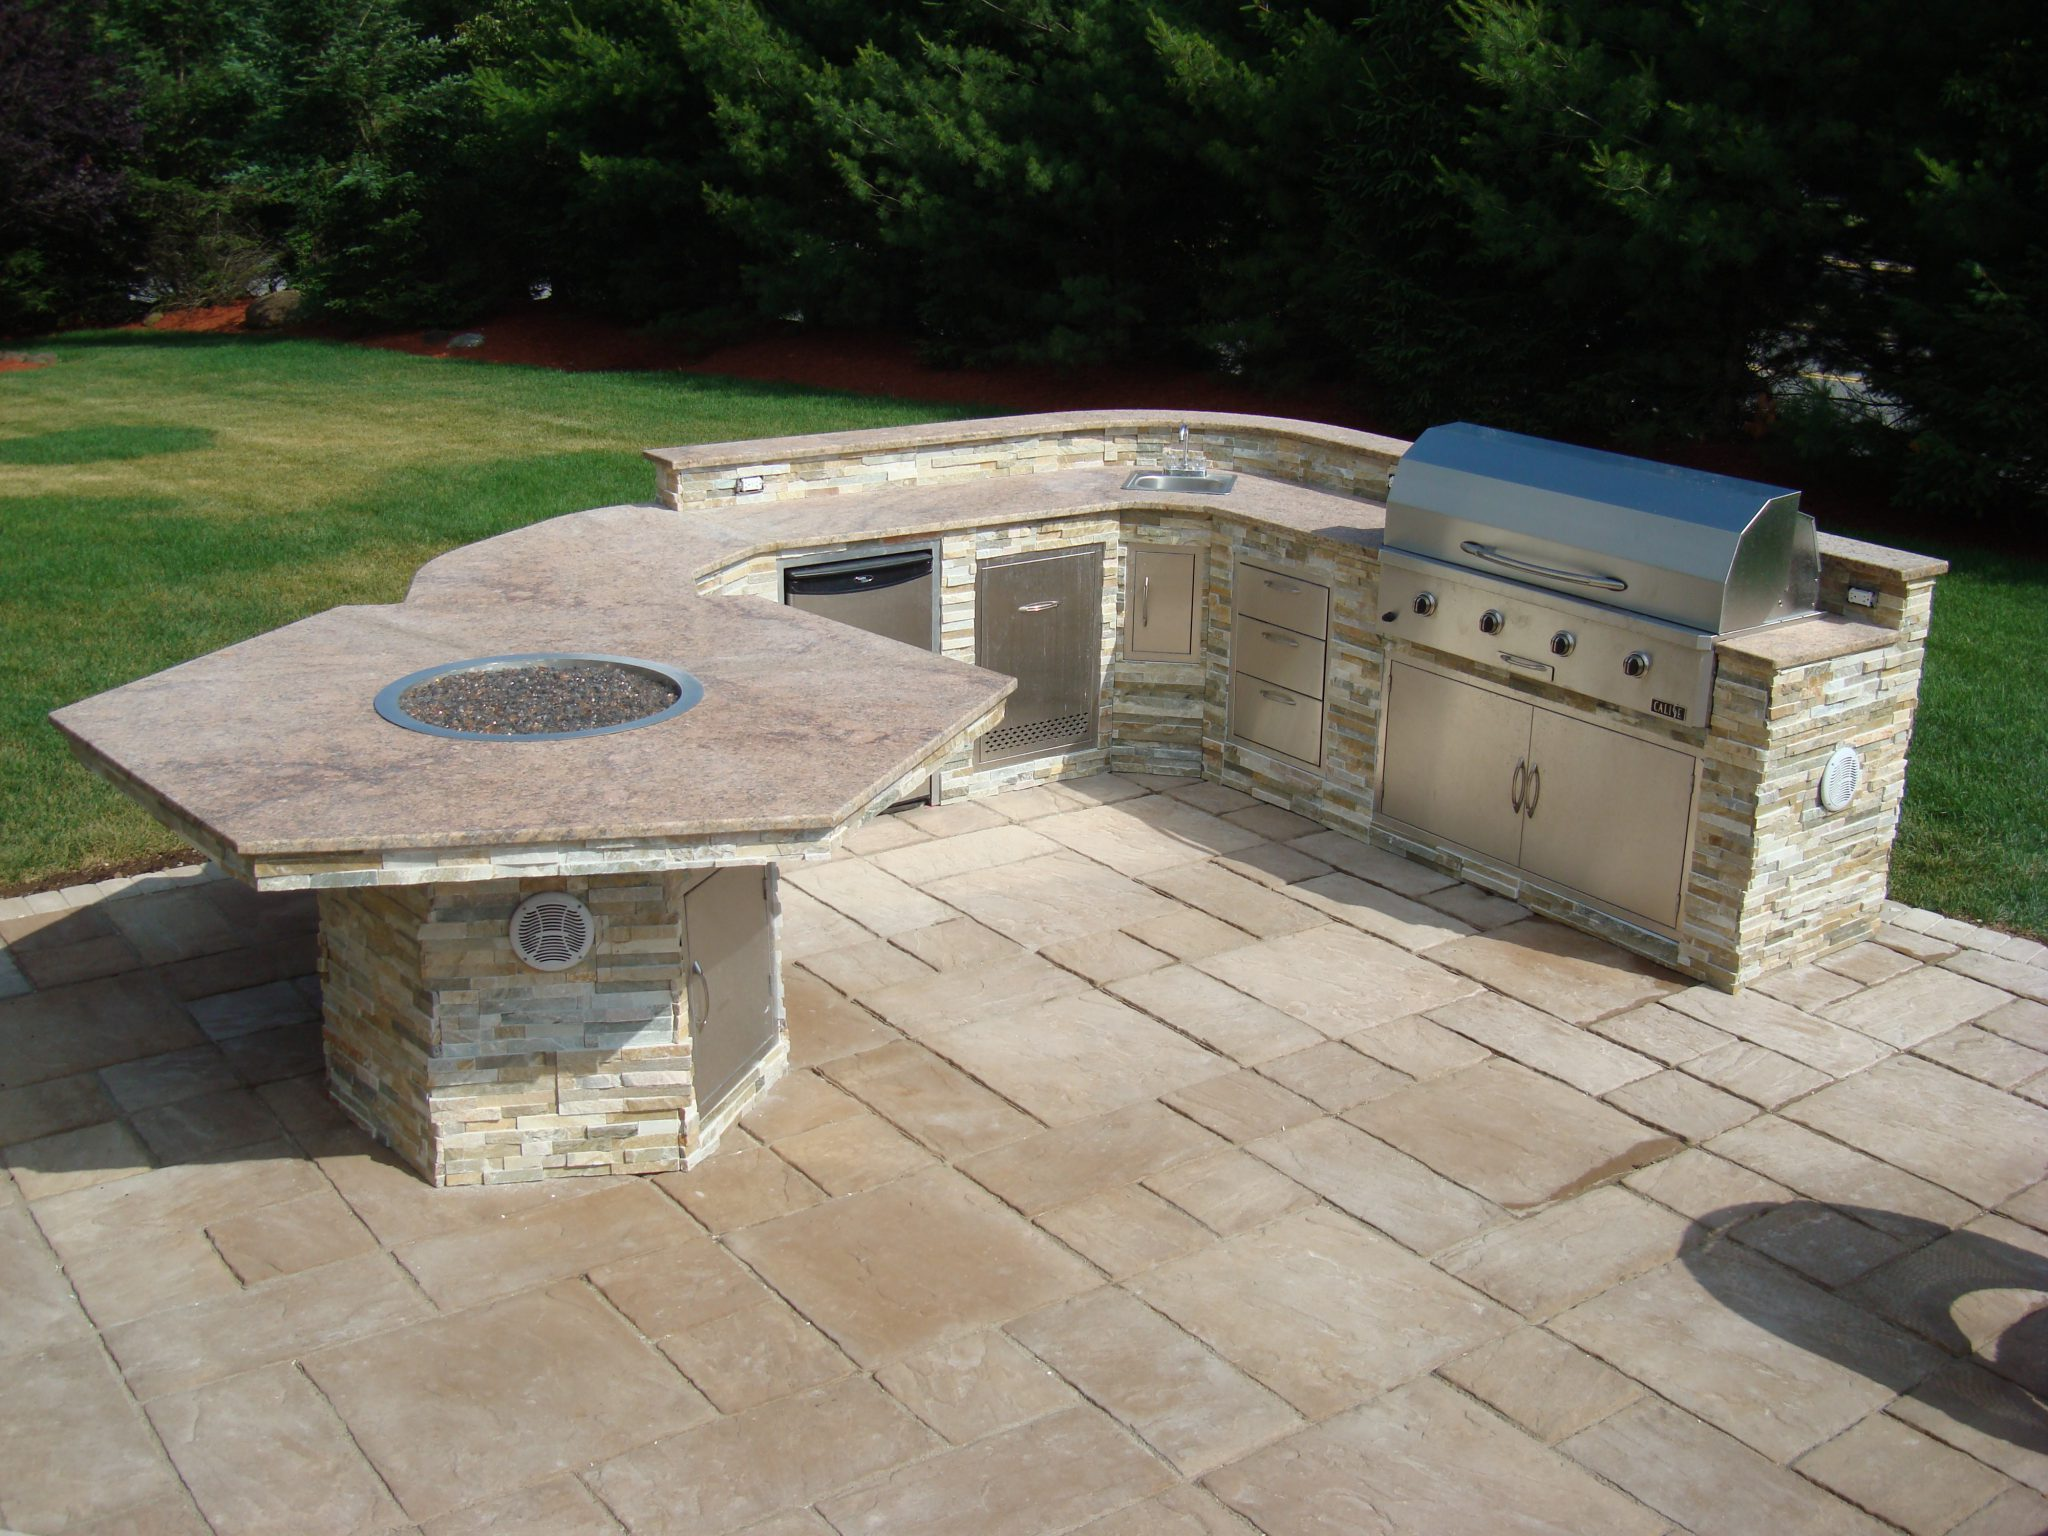 Patio Design Ideas With Fire Pits stone patio with built in fire pit patio ideas Outdoor Kitchen With Small Fire Pit